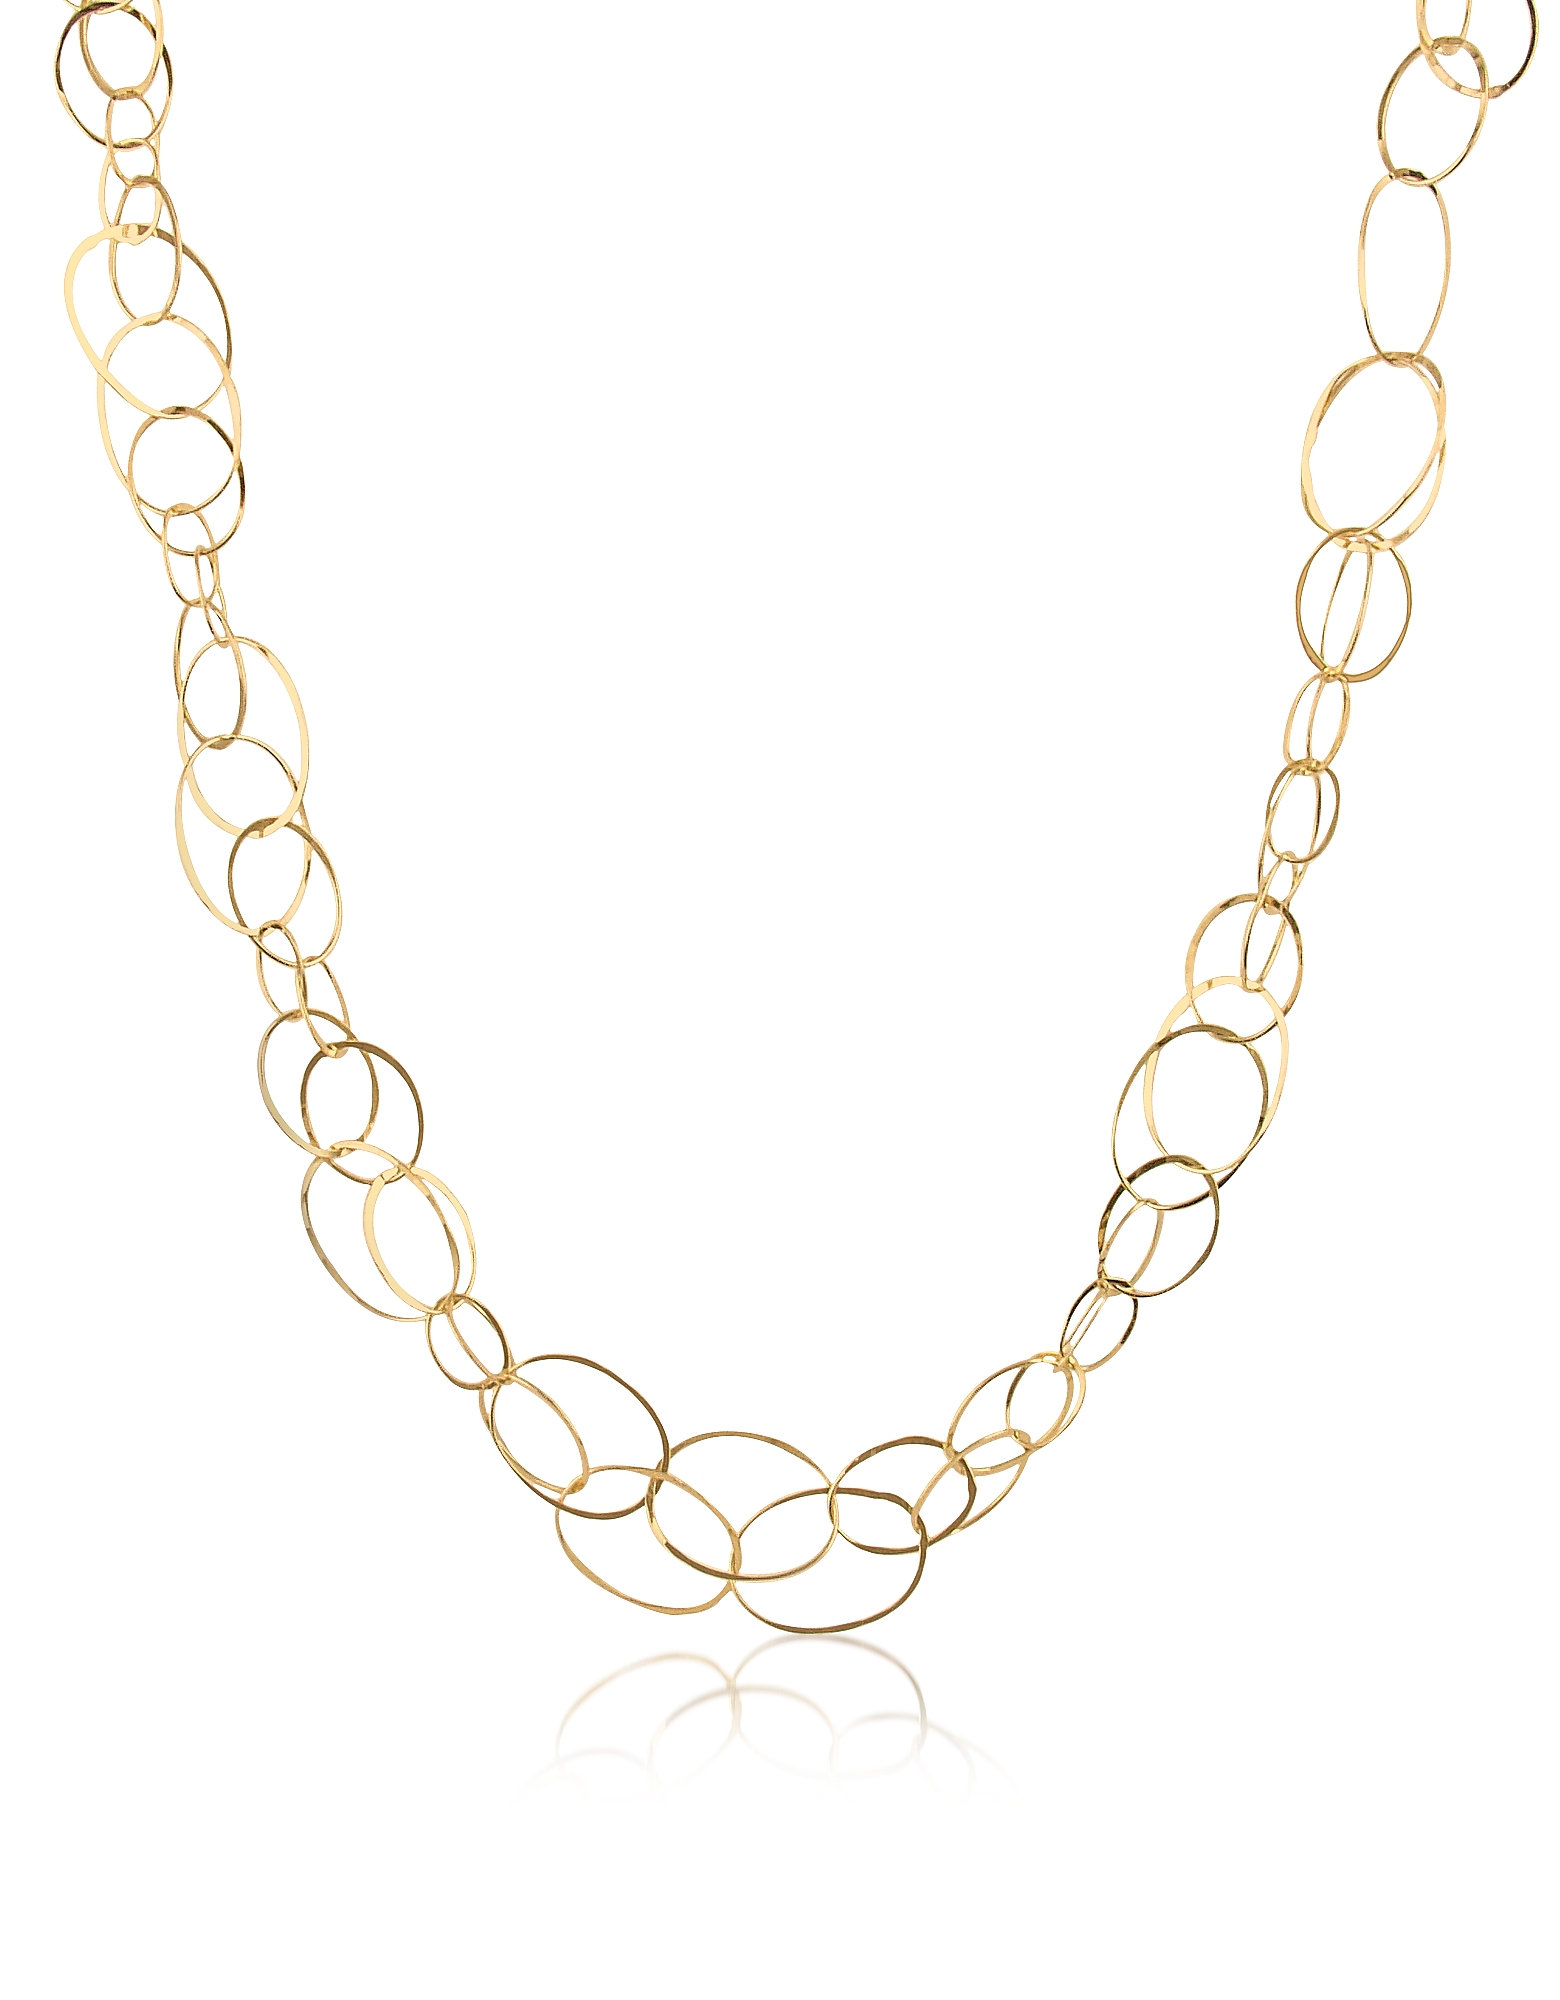 Orlando Orlandini Necklaces, Scintille - 18K Yellow Gold Chain Necklace